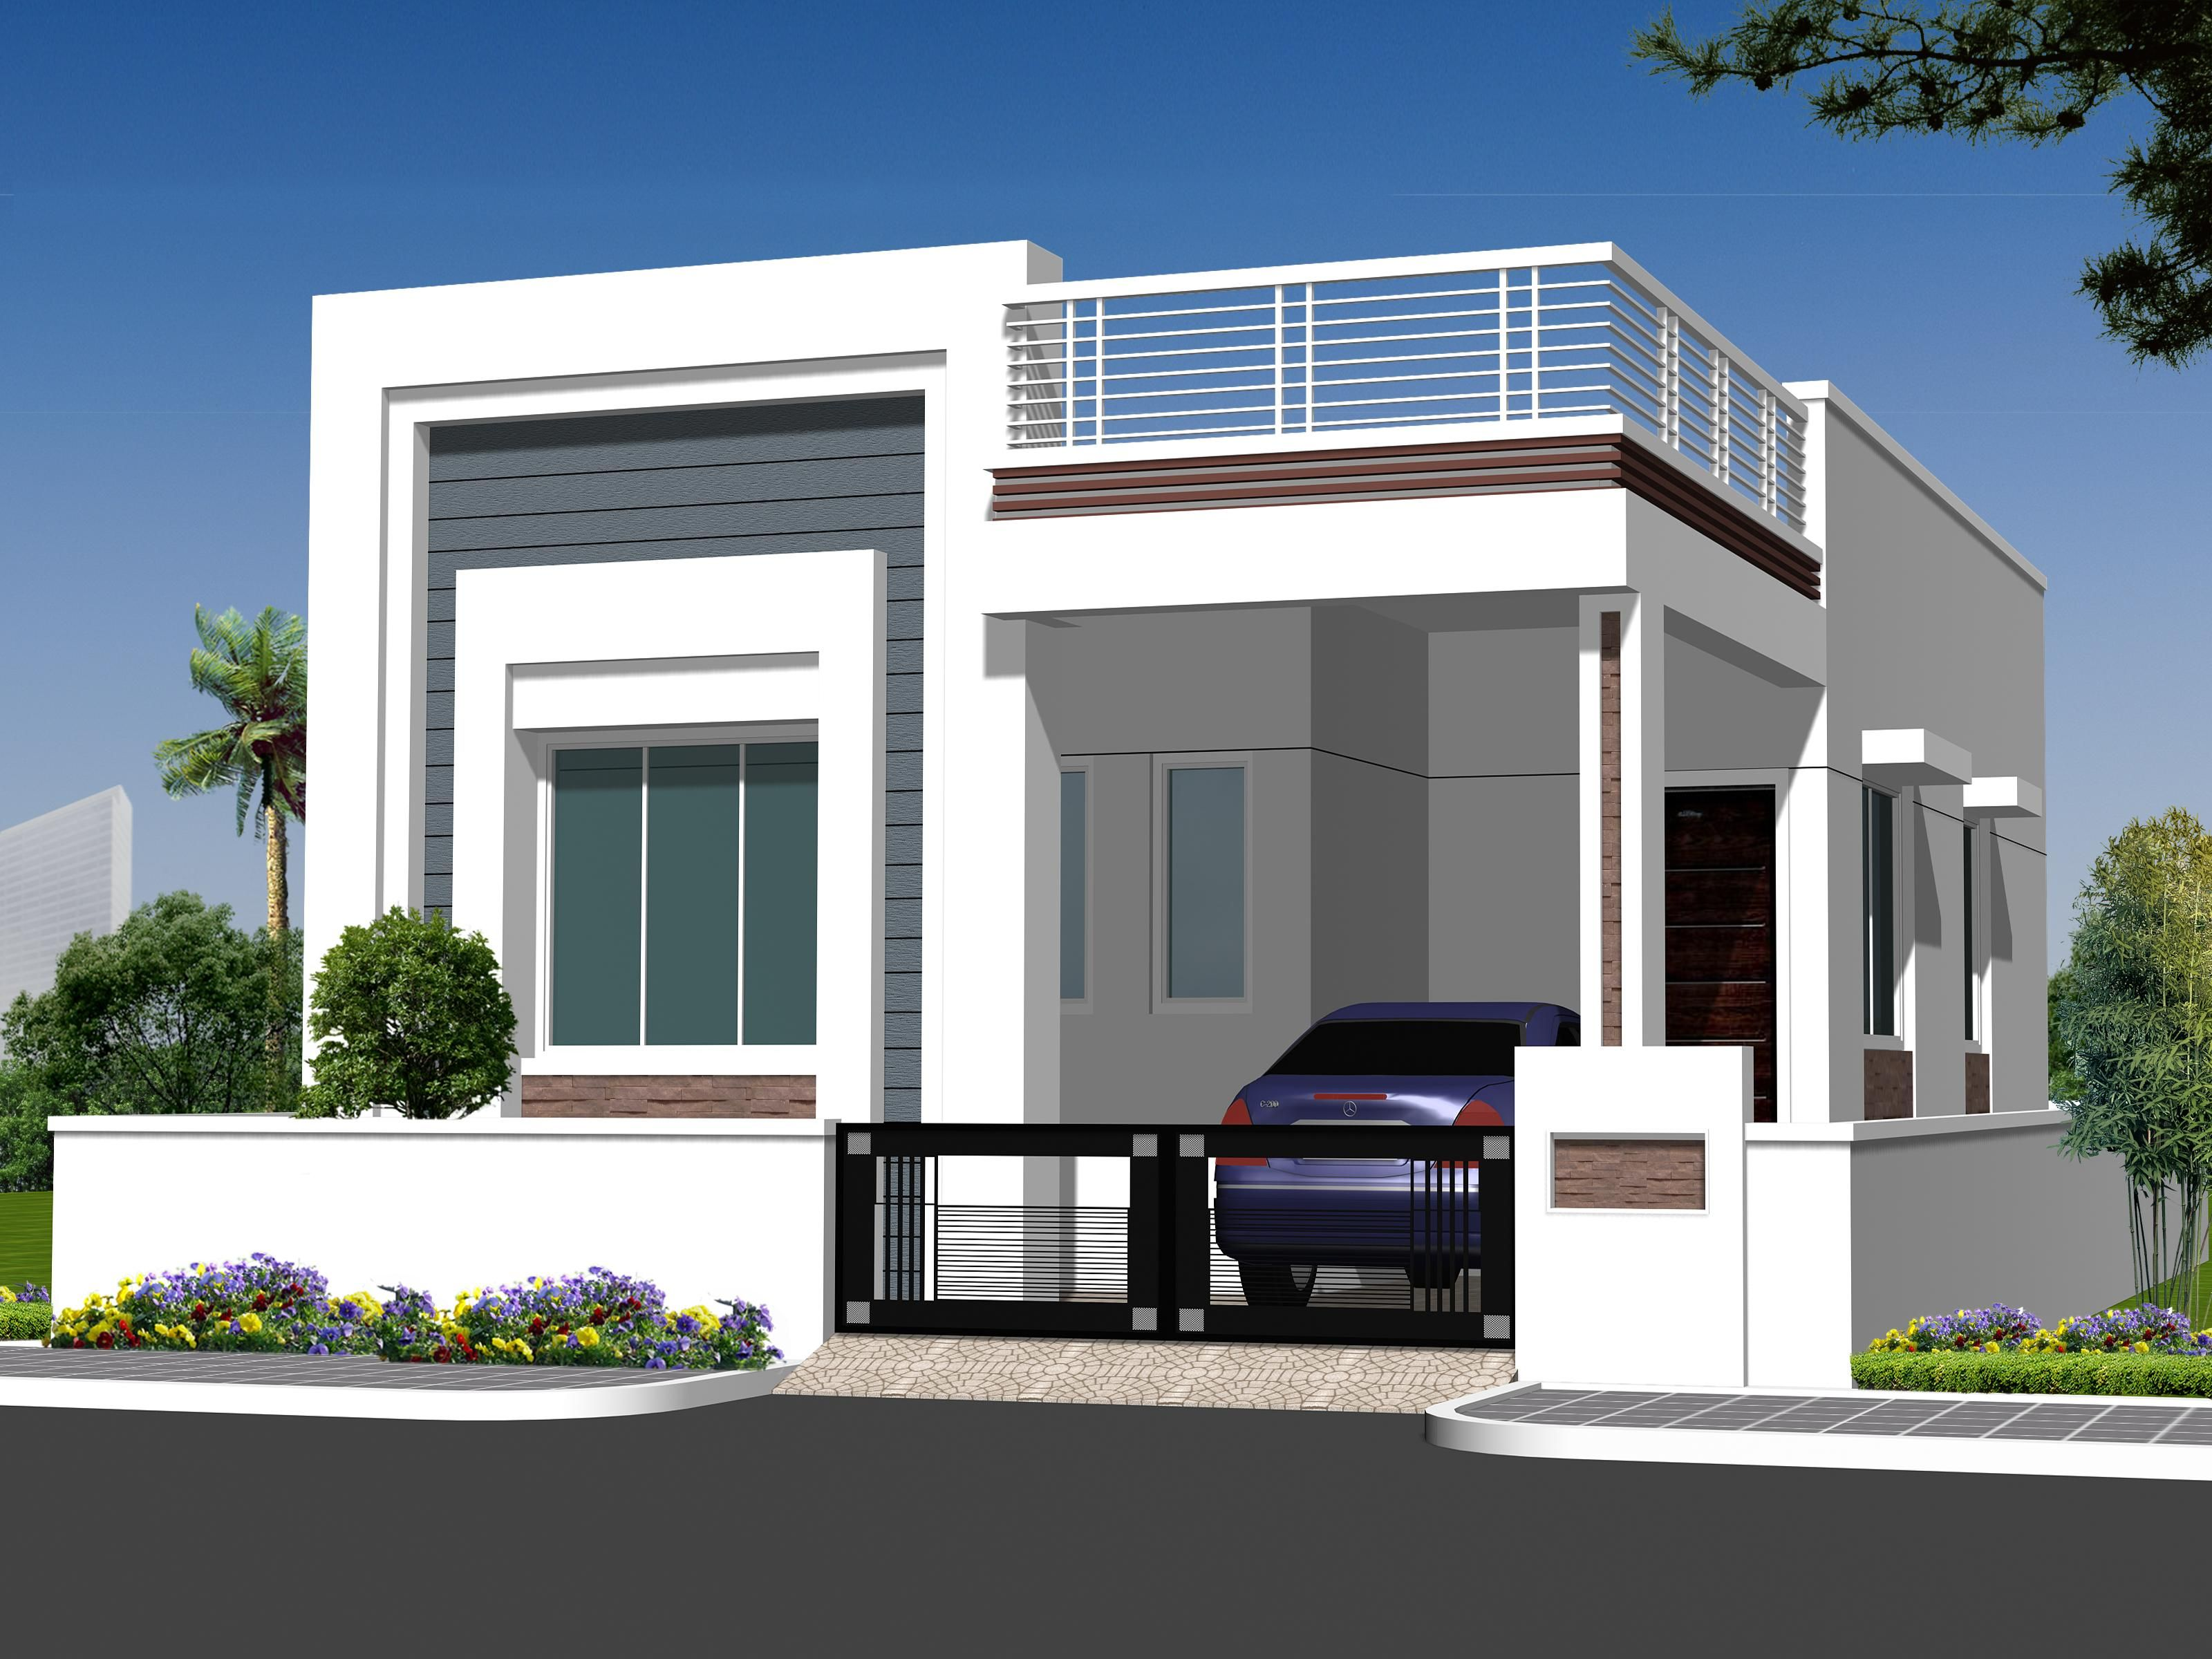 Front Elevation Designs Of Houses In Hyderabad : Houses for sale in hyderabad g elevation